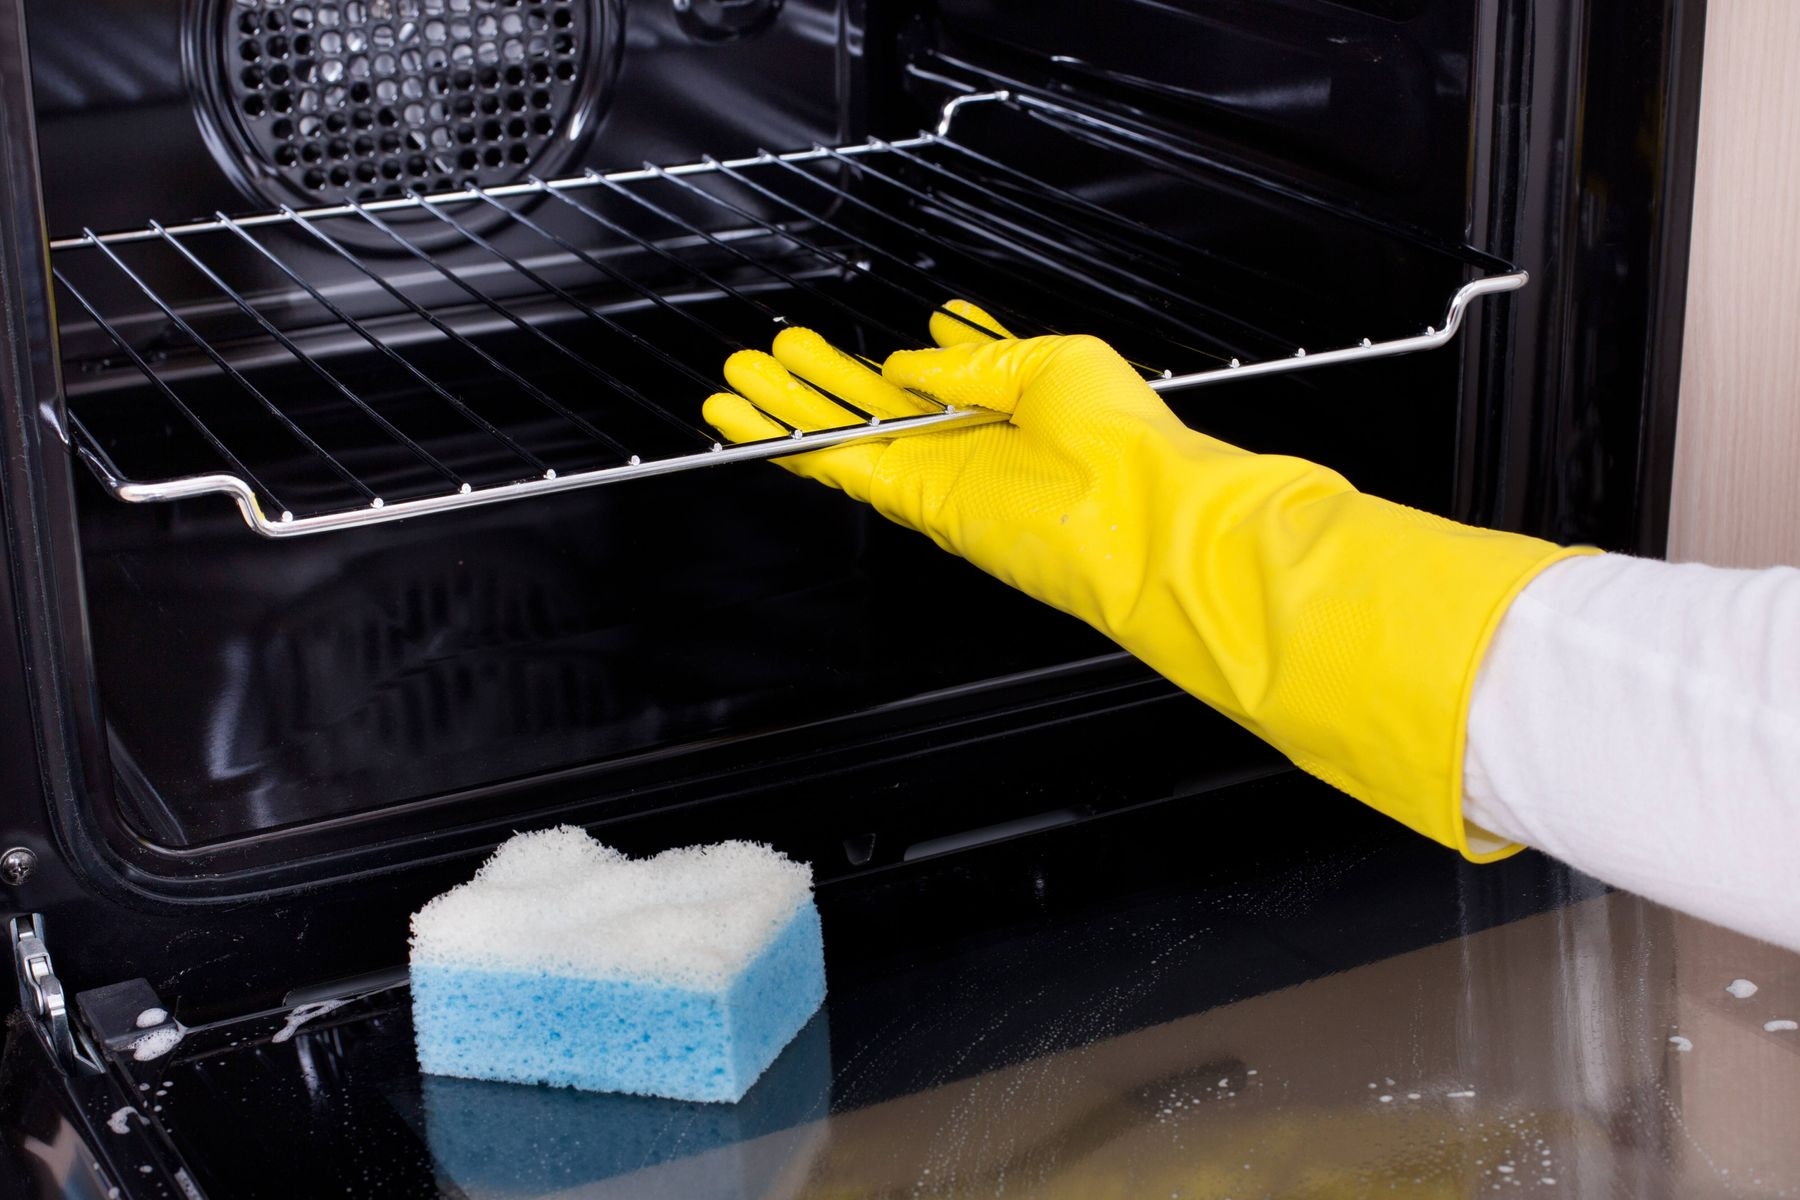 Ovens Cleaning Tips and Tricks